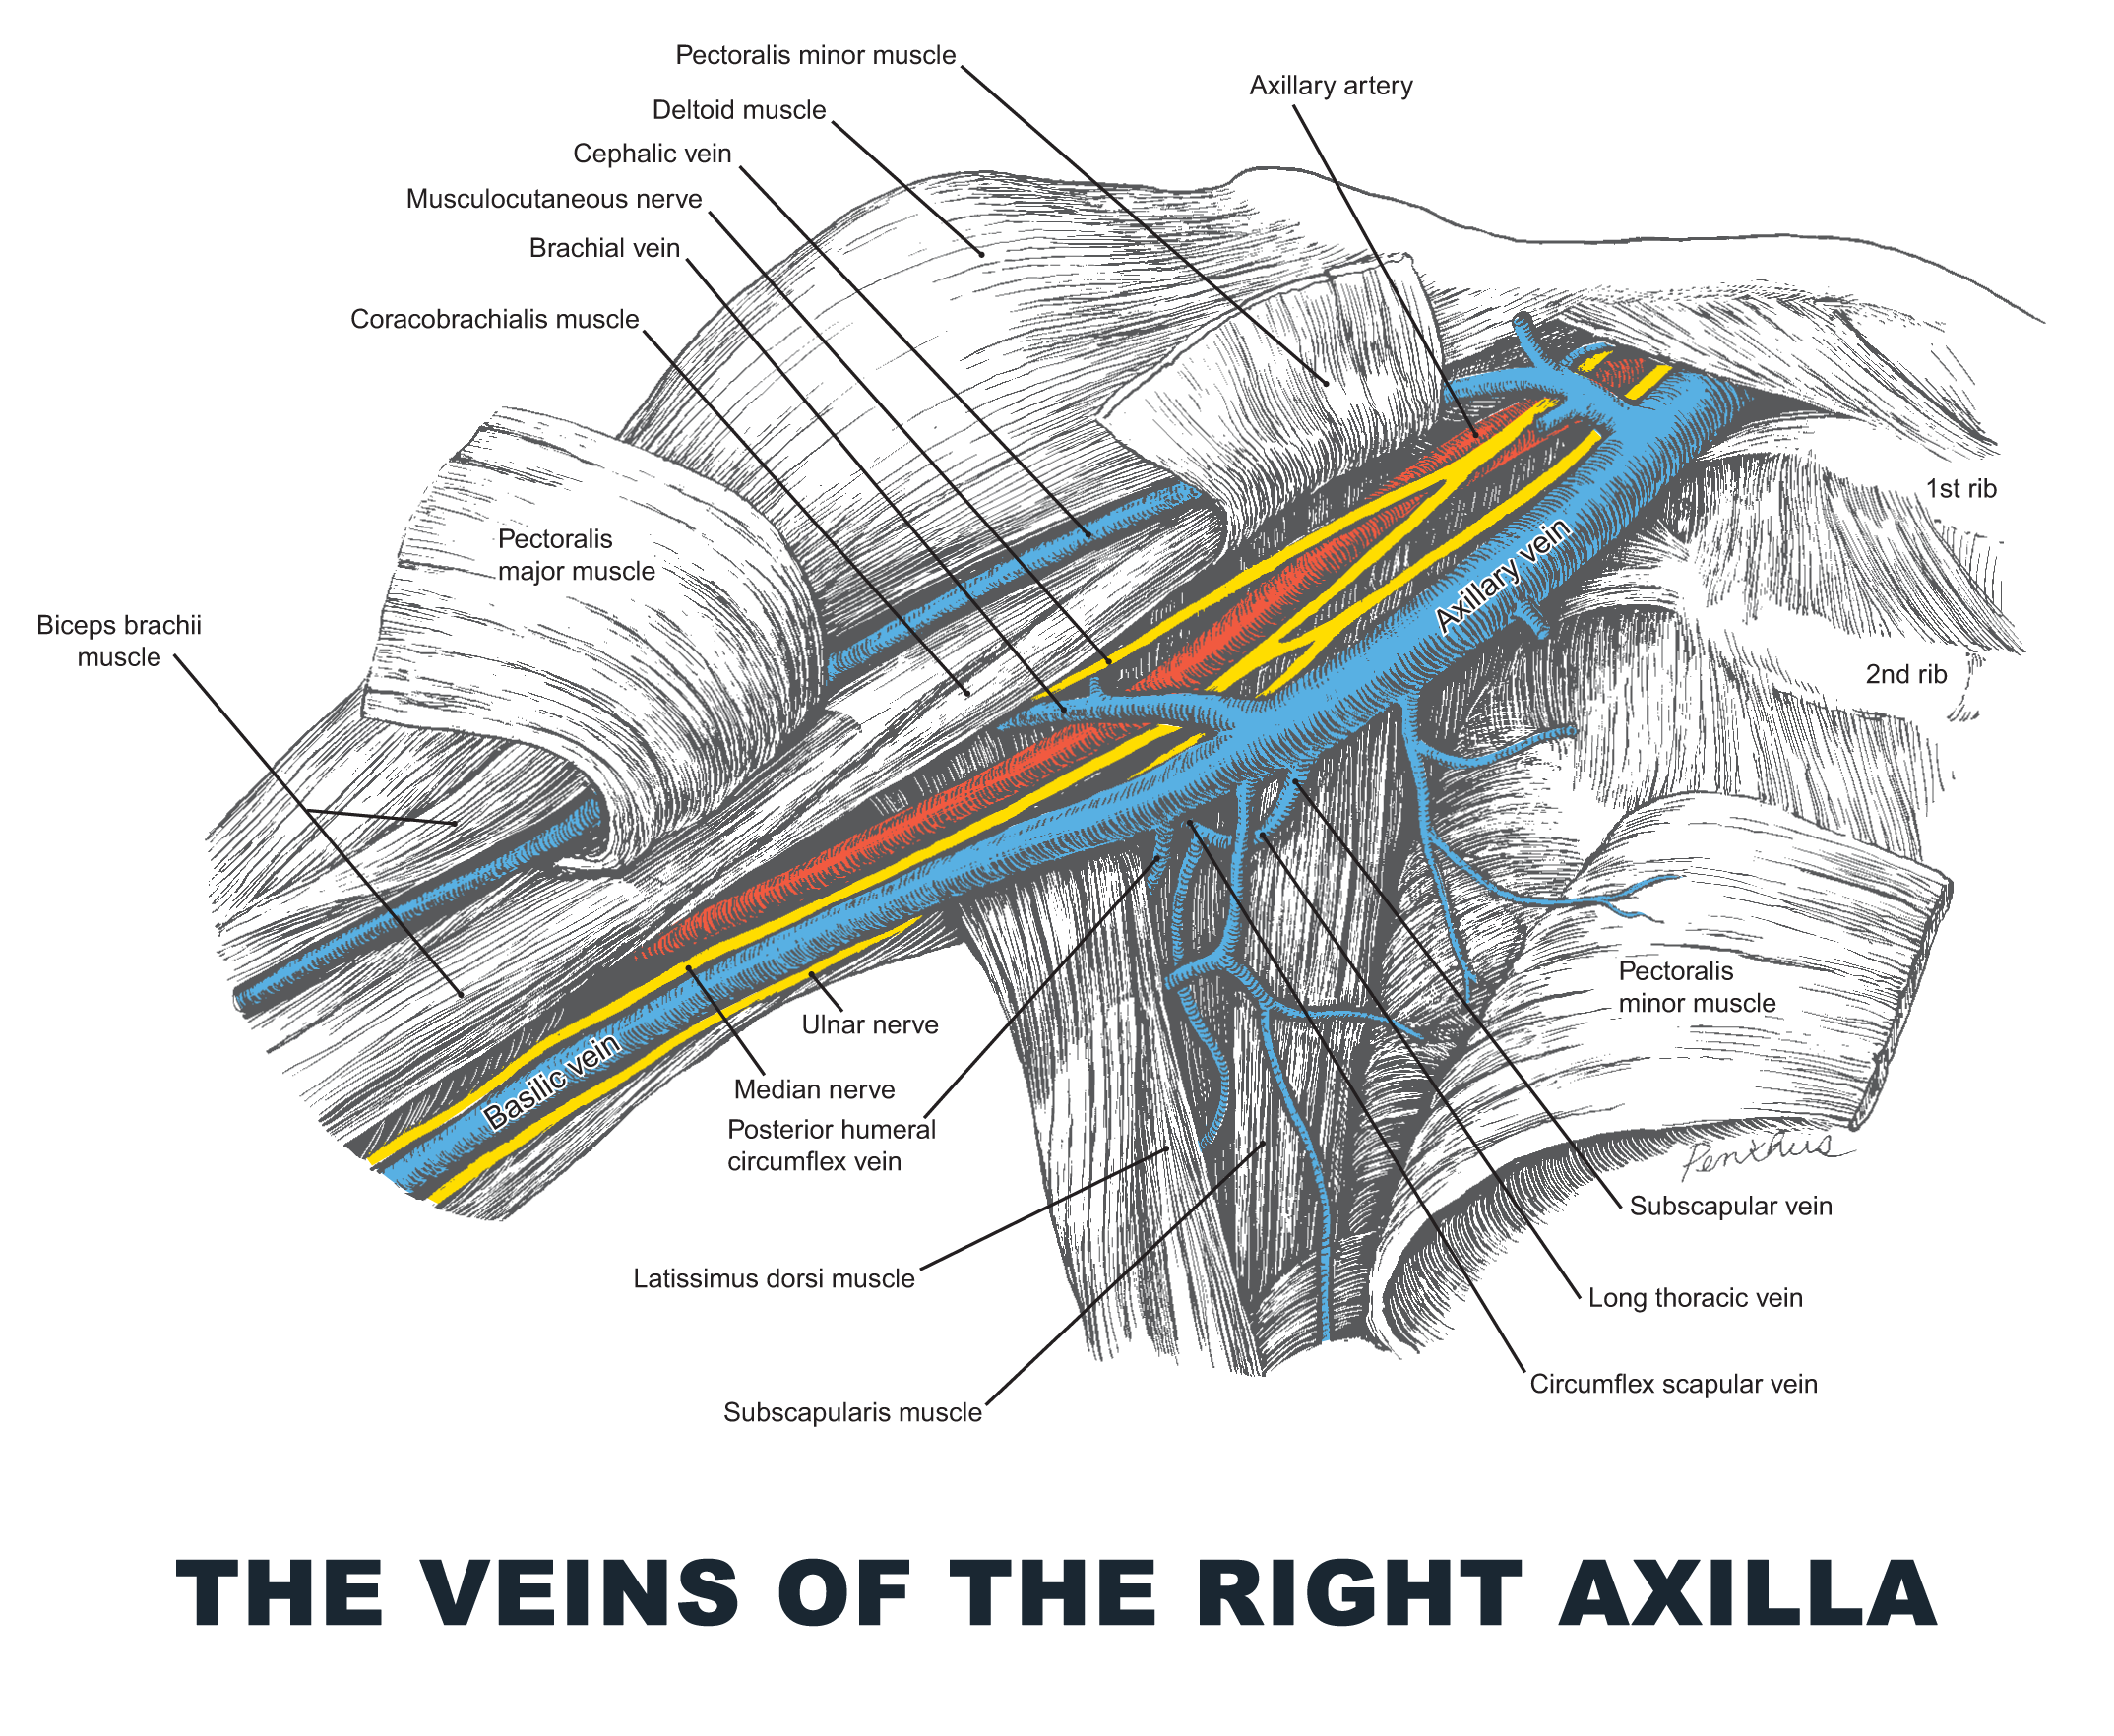 The Veins of the Right Axilla - #anatomy images illustrations ...